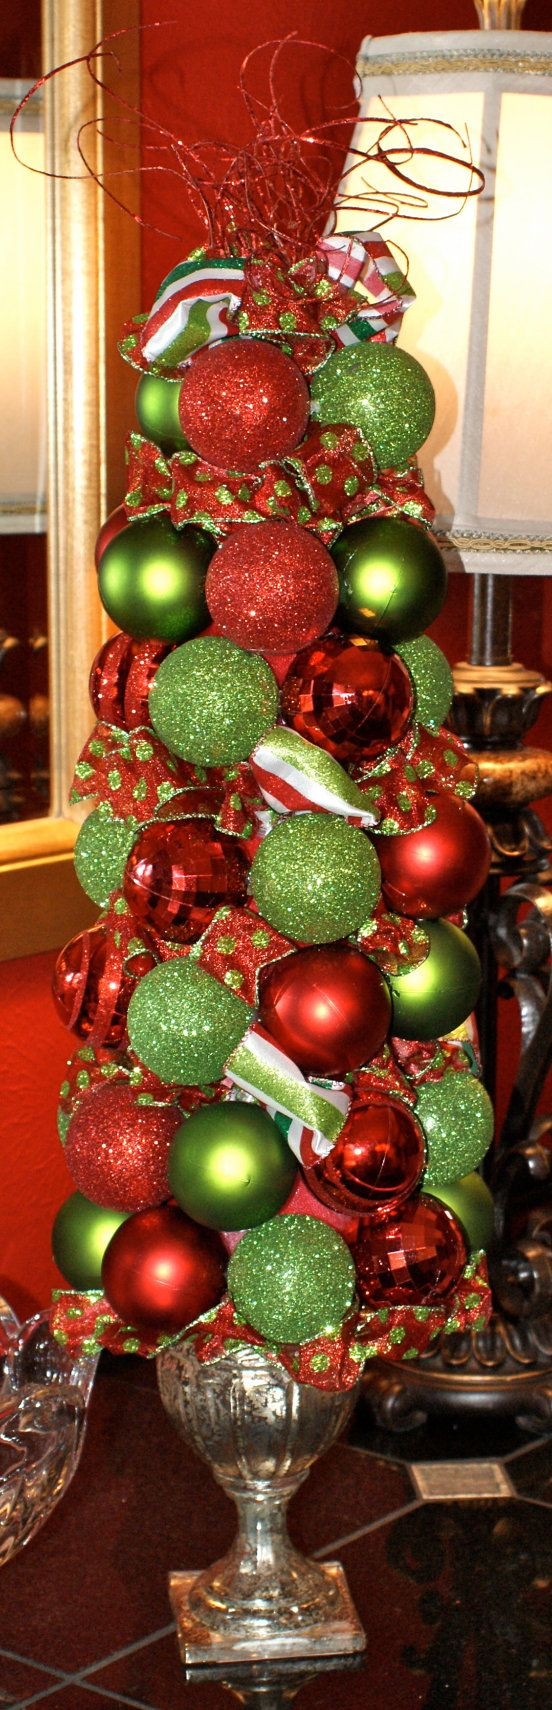 Best images about topiaries on pinterest trees